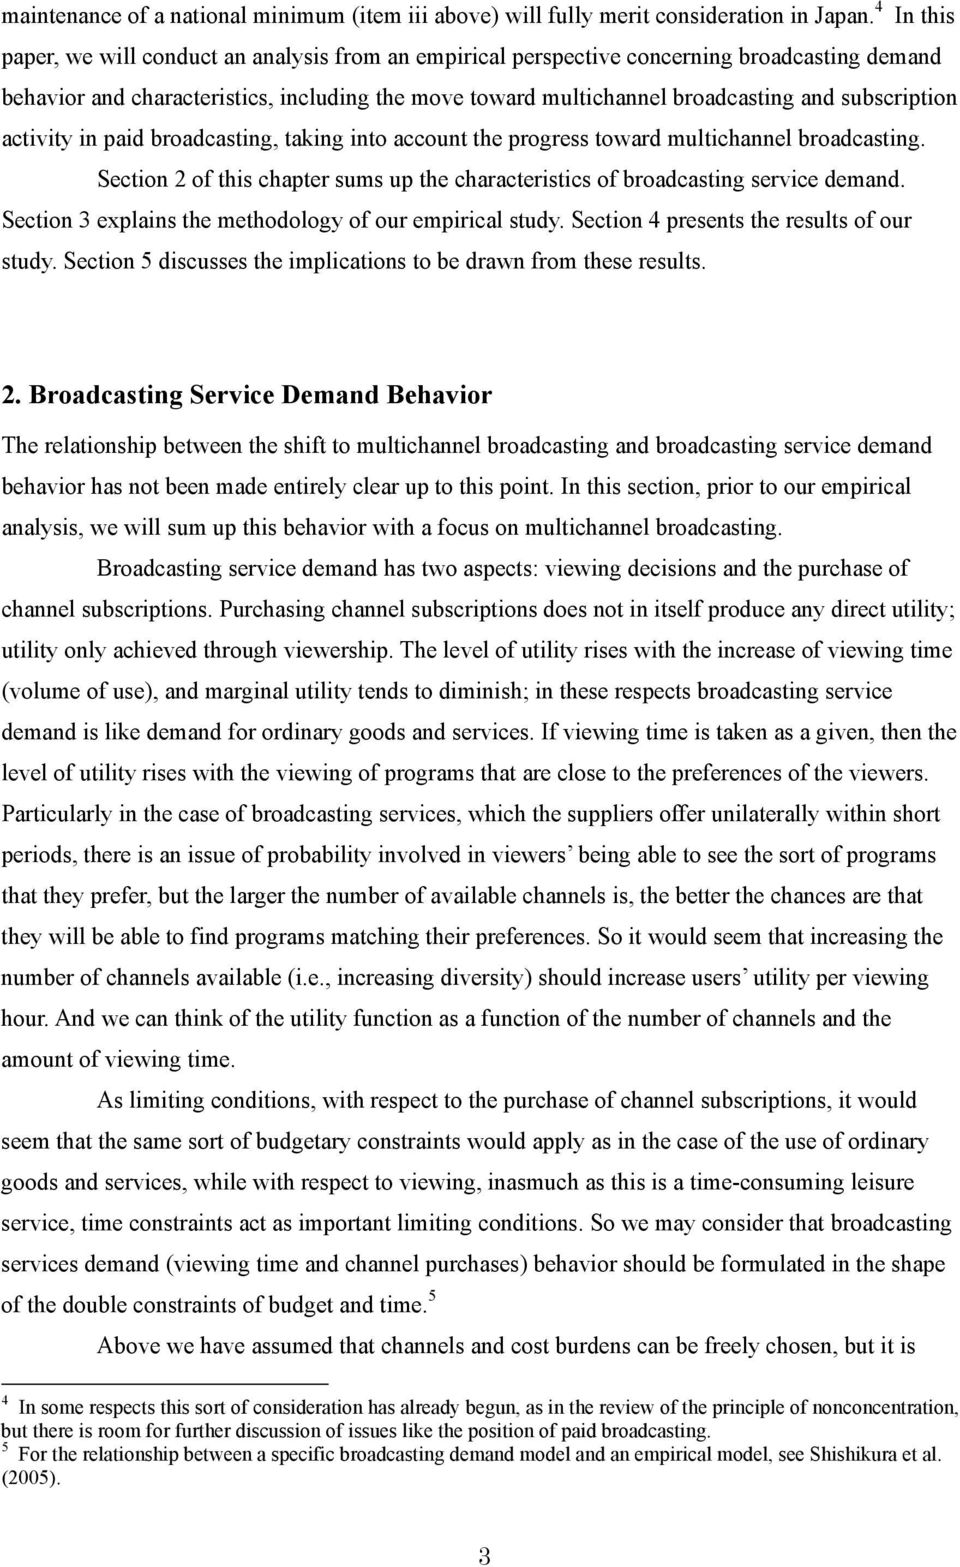 pad broadcastng, takng nto account the progress toward multchannel broadcastng. Secton 2 of ths chapter sums up the characterstcs of broadcastng servce demand.